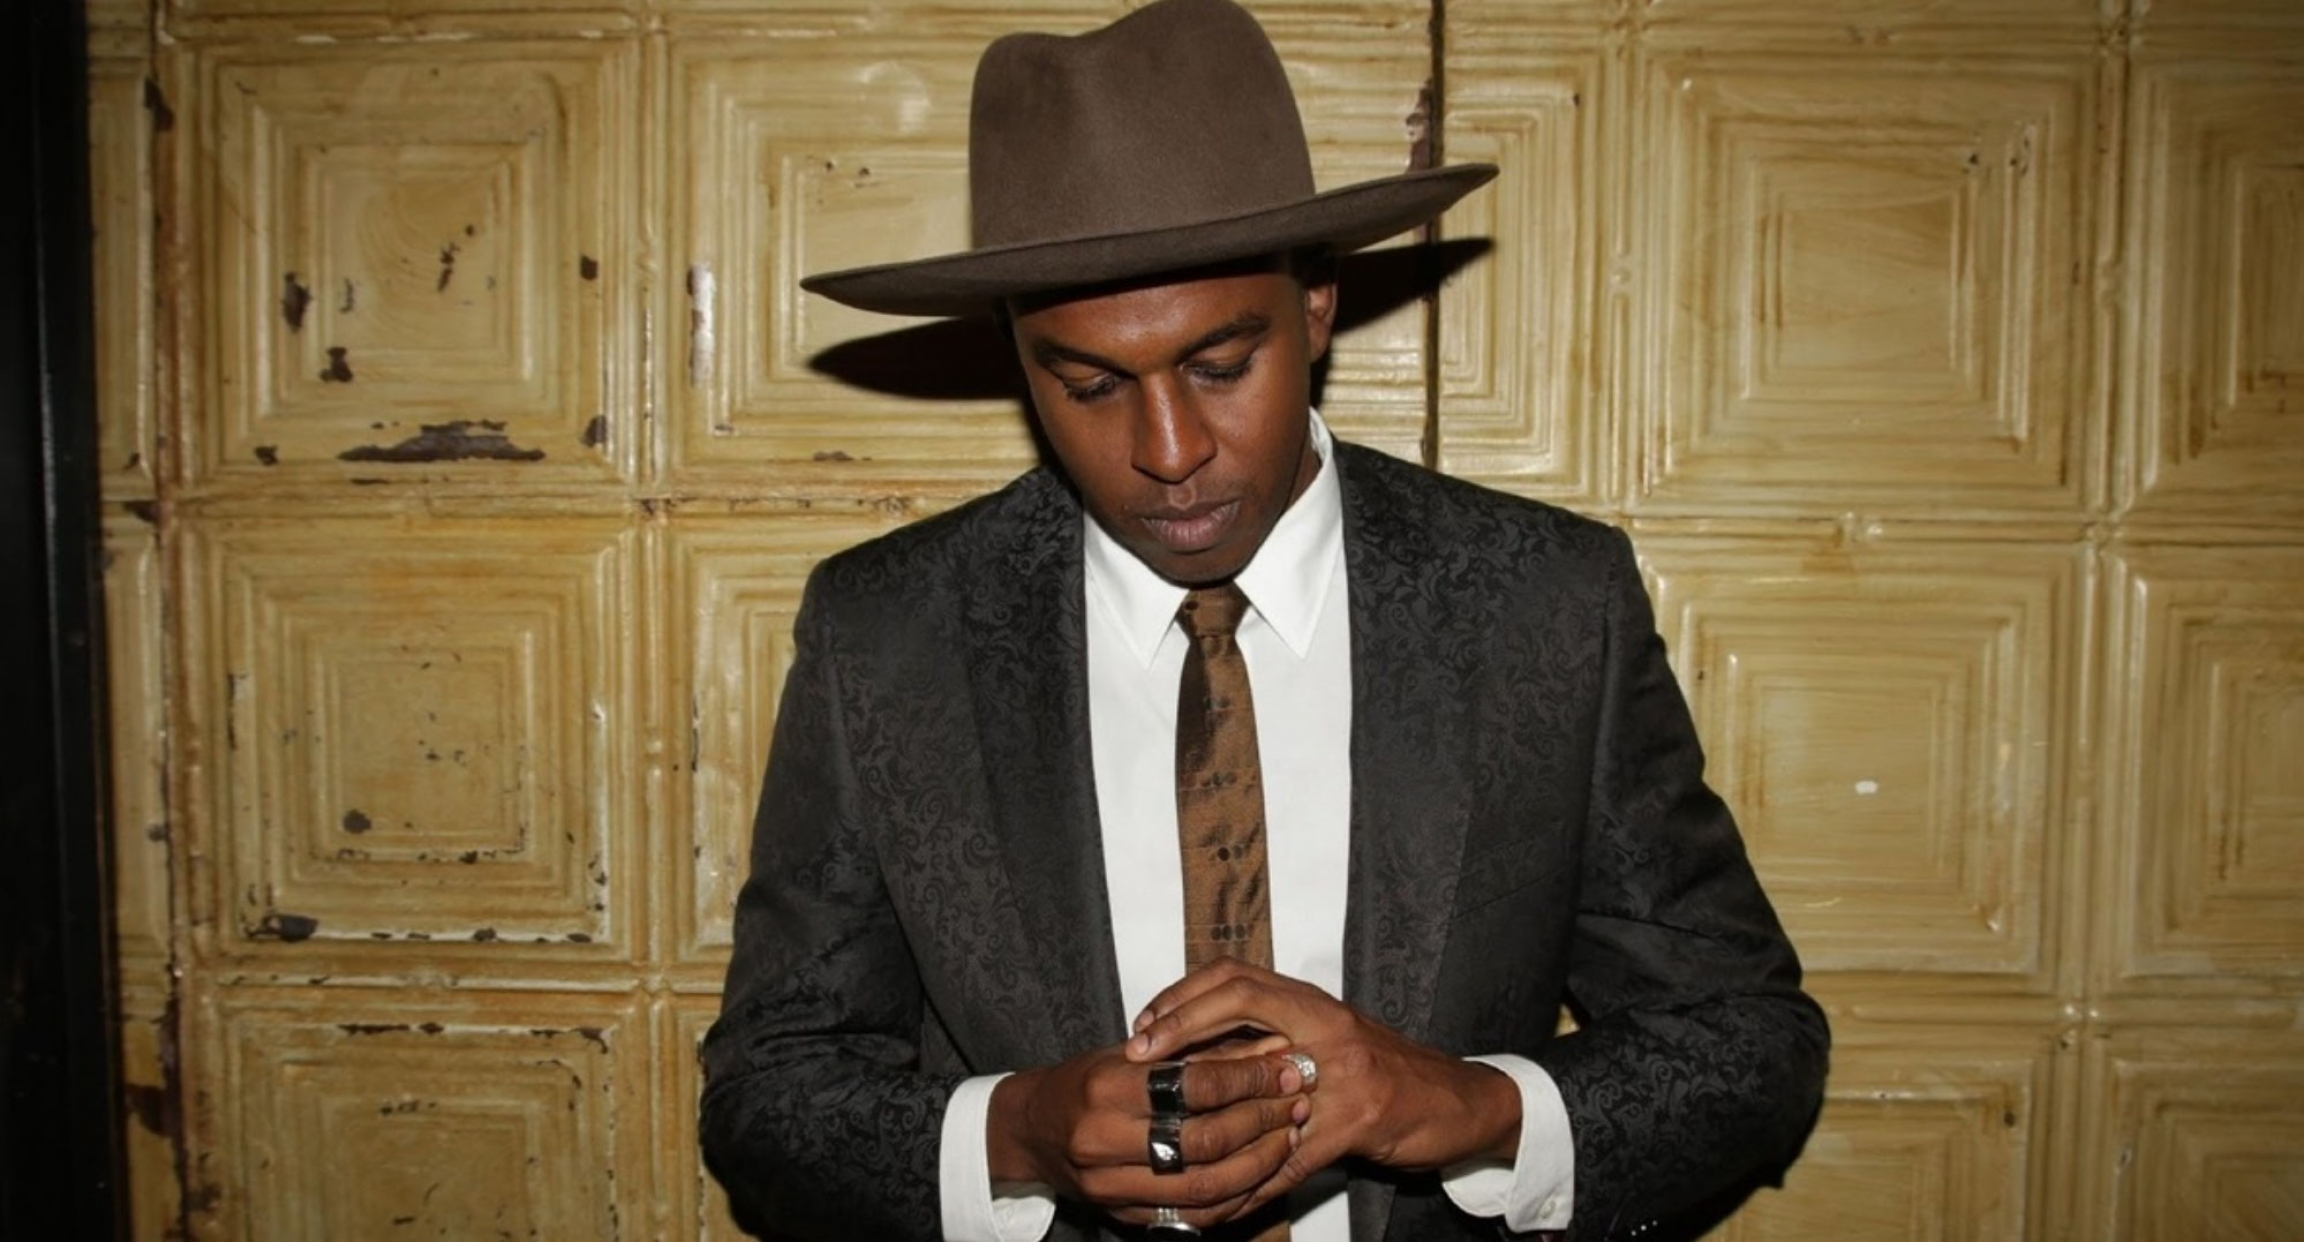 Sinkane is shown wearing a suit and wide-brimmed hat.